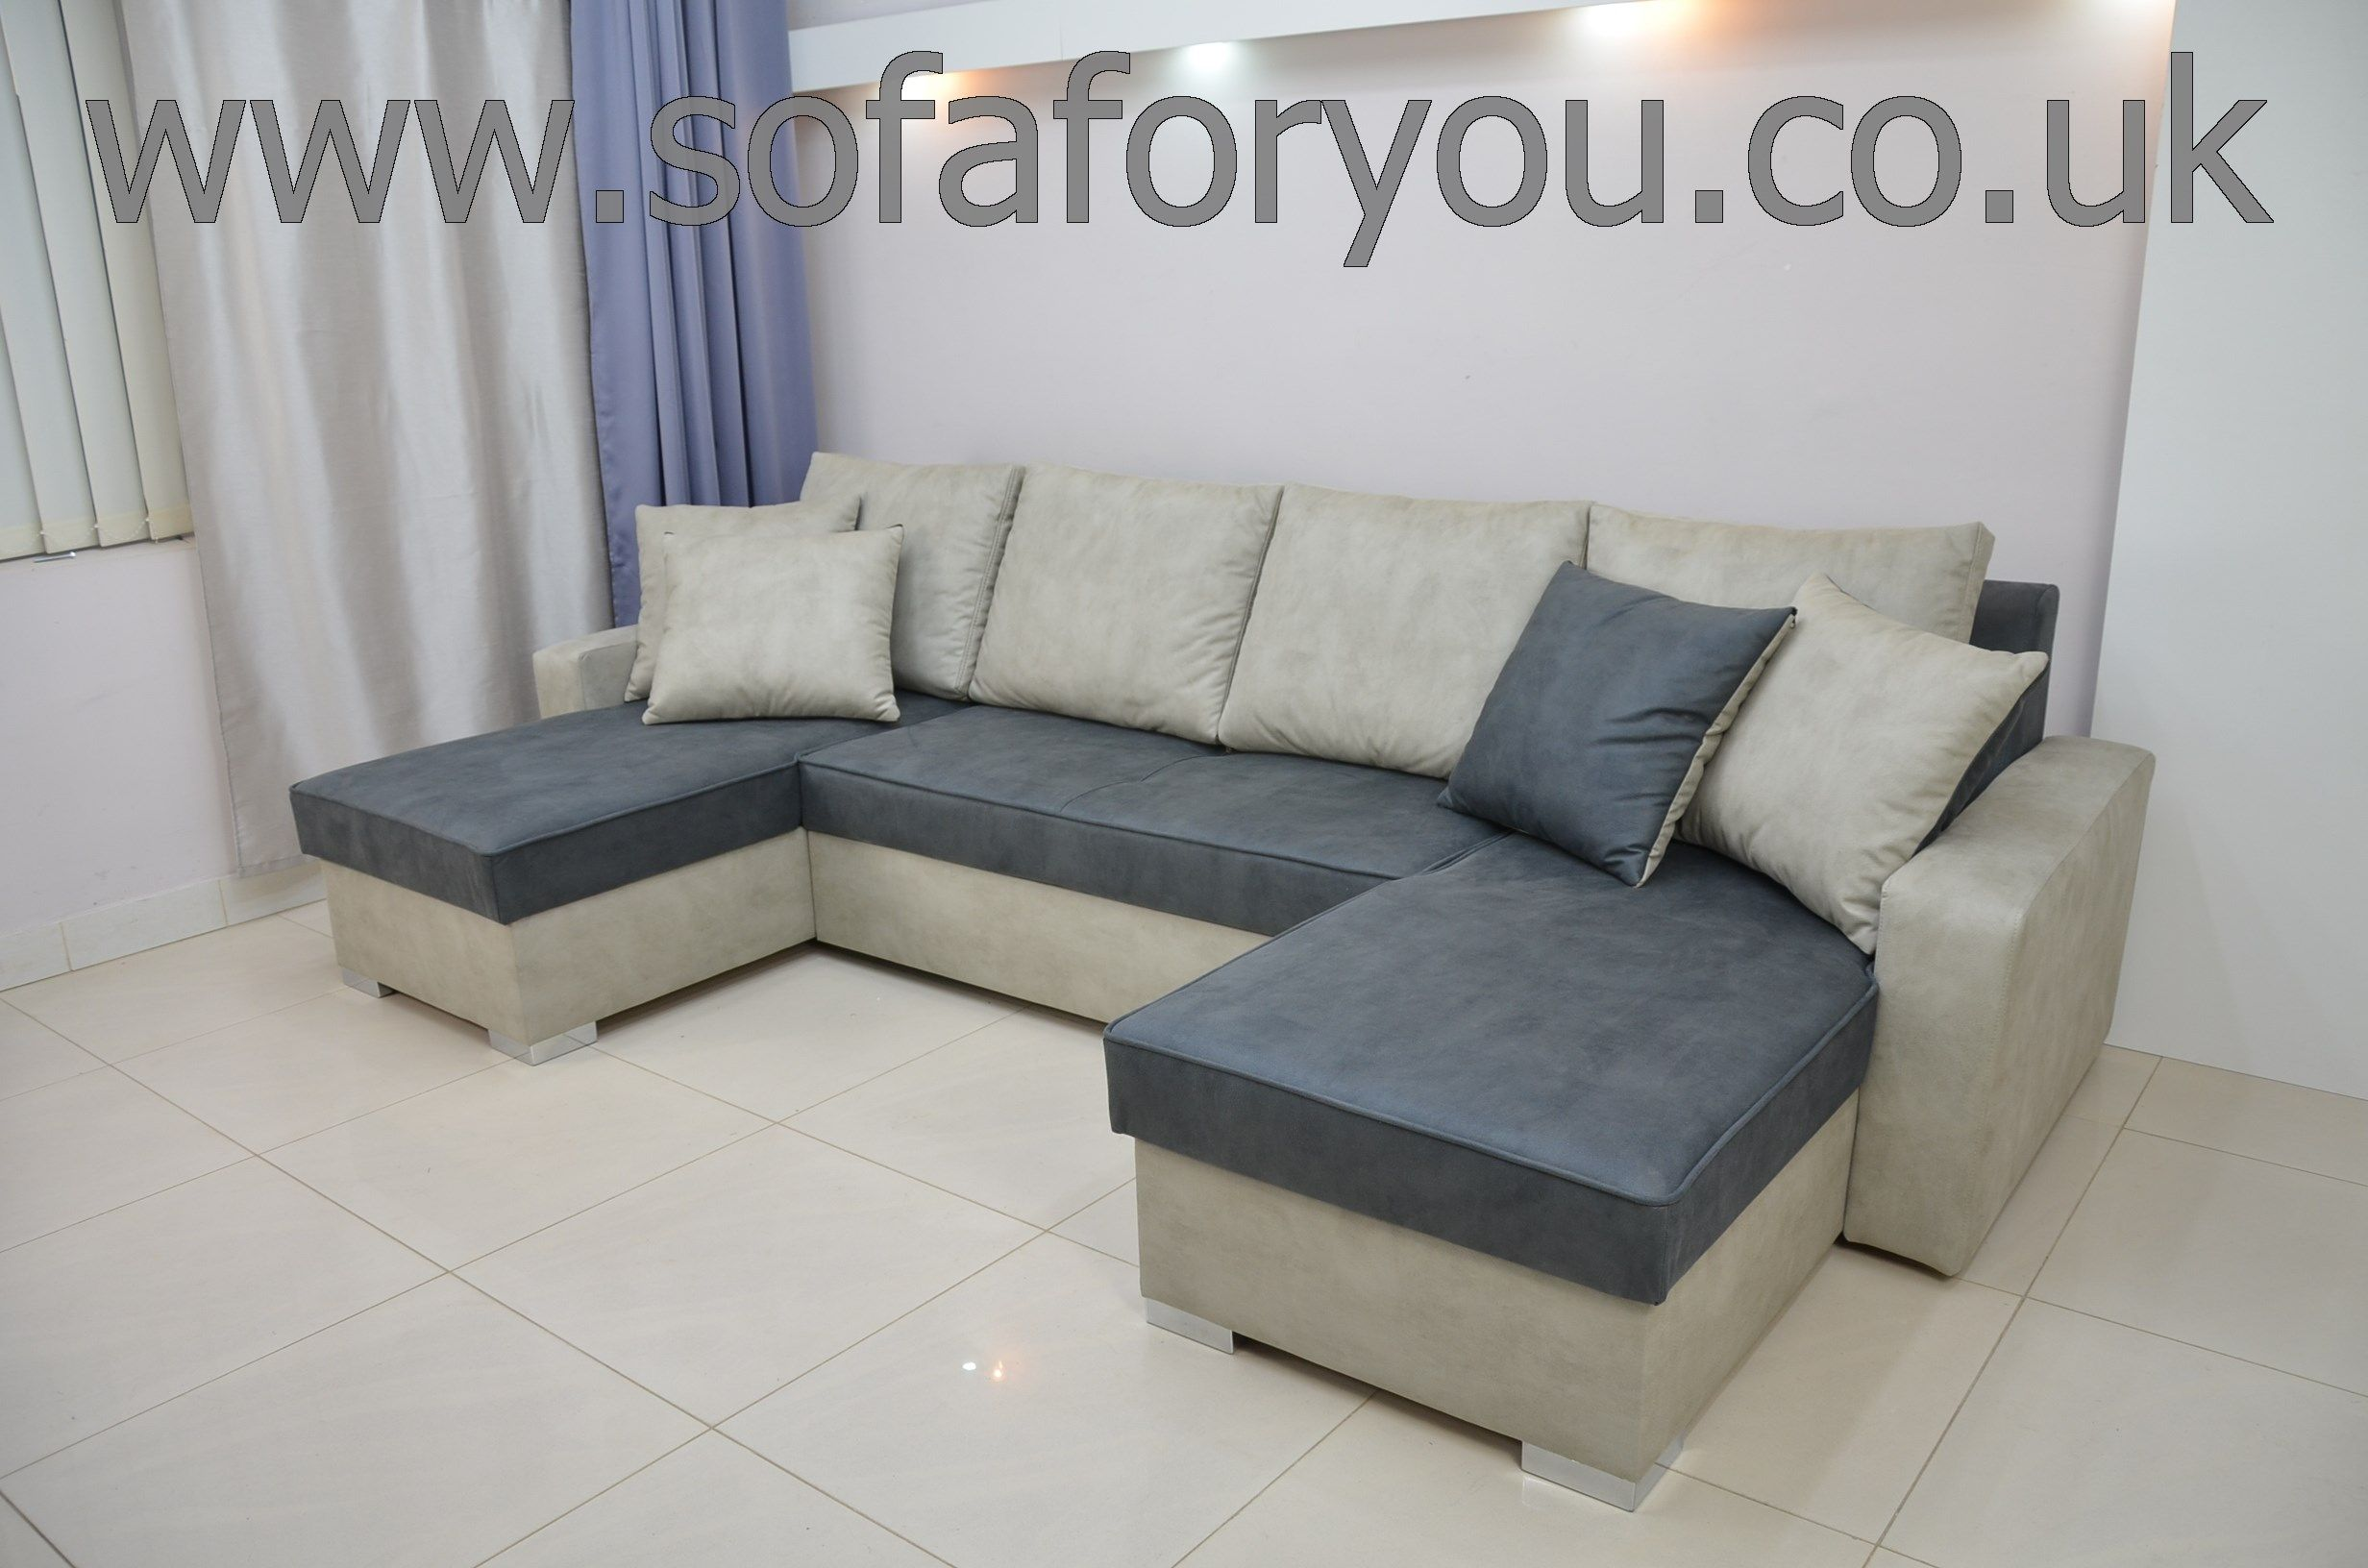 Duke Double Chaise Sofa Bed You Can Mix And Match Any Colours